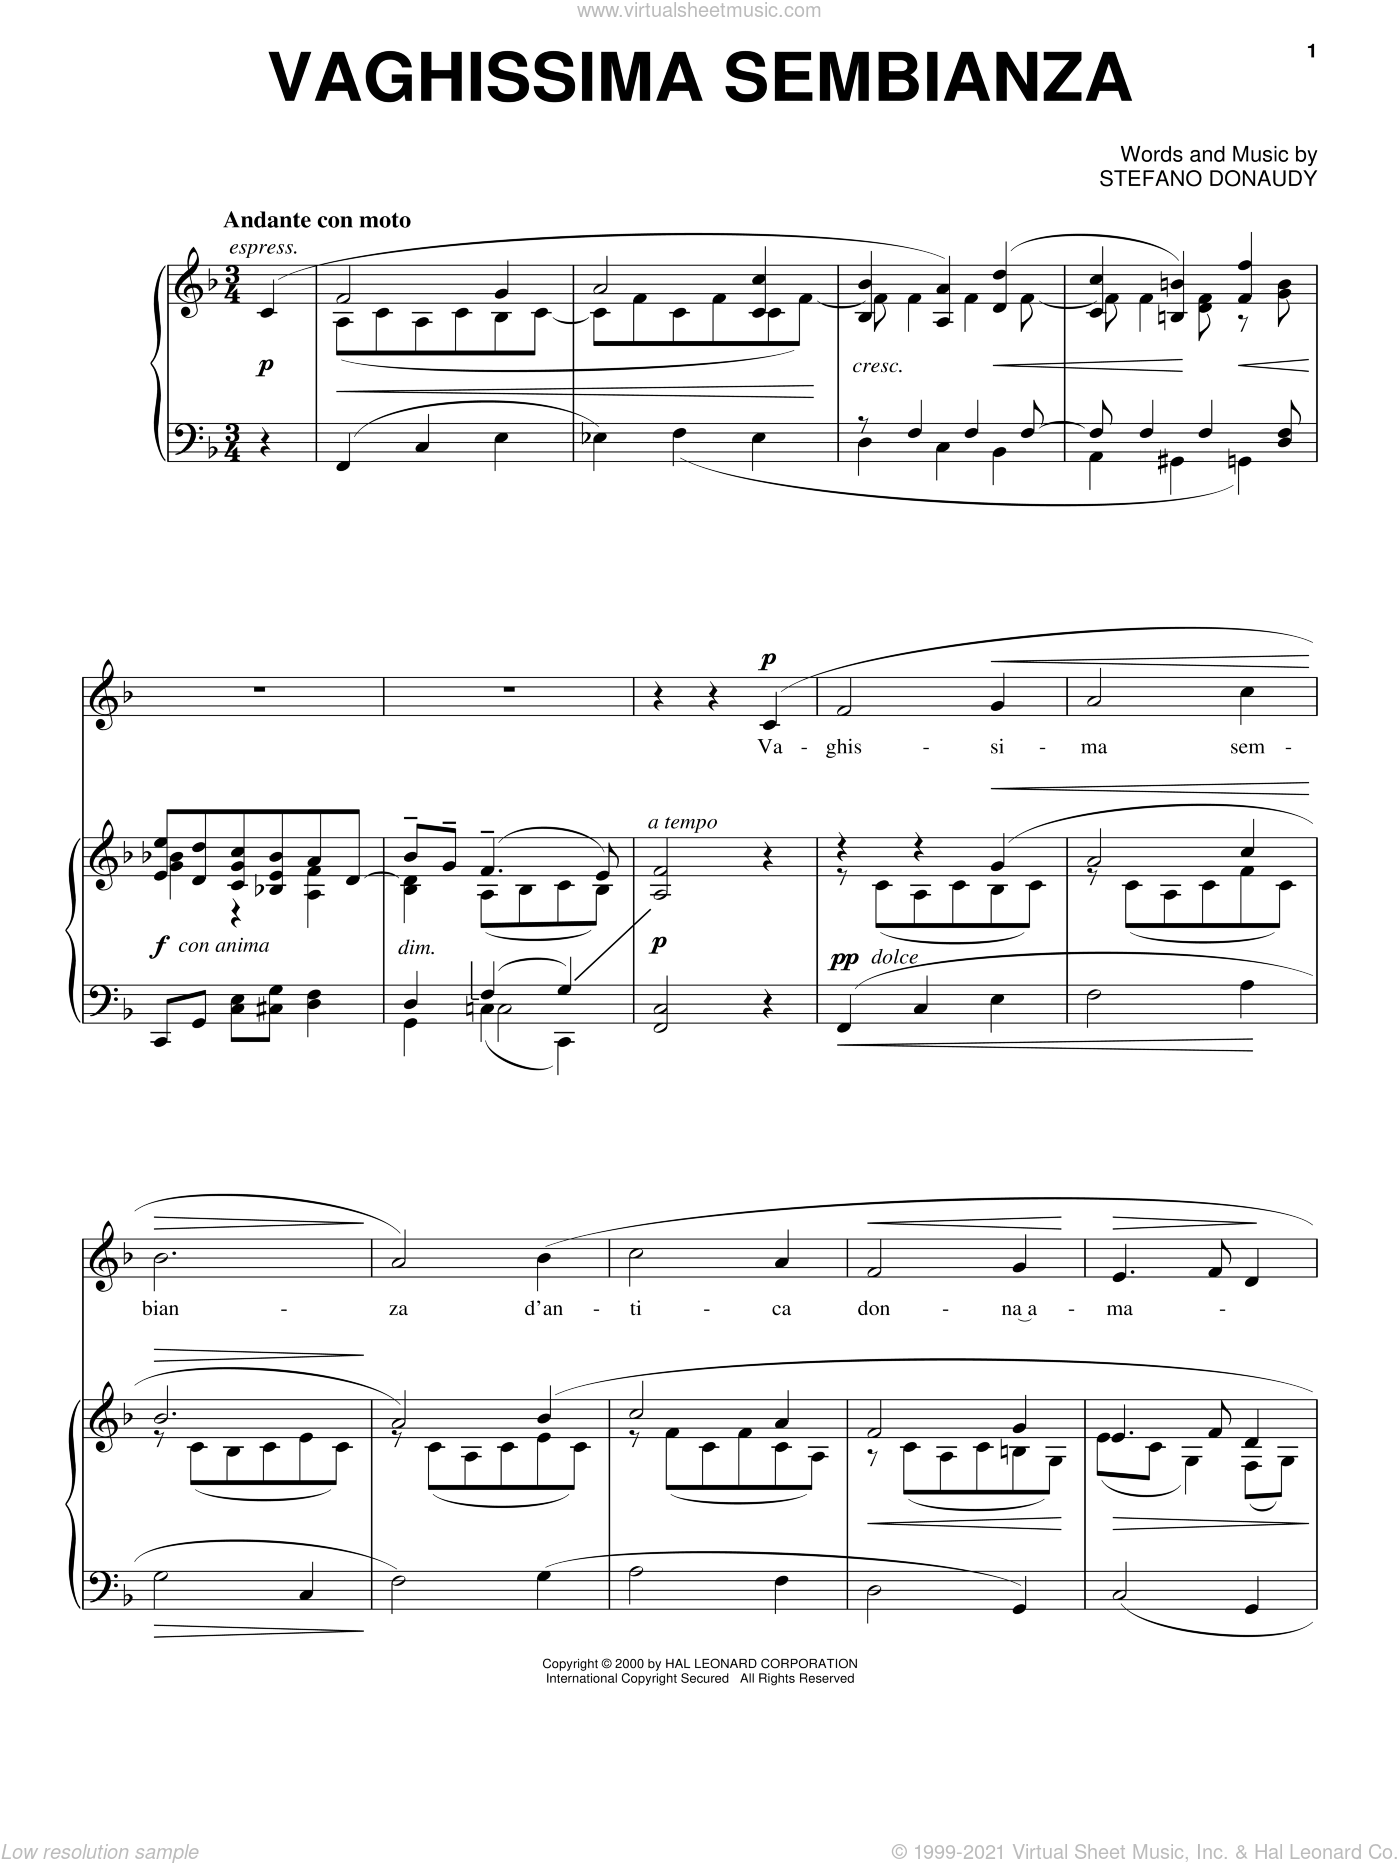 Vaghissima Sembianza sheet music for voice, piano or guitar by Stefano Donaudy